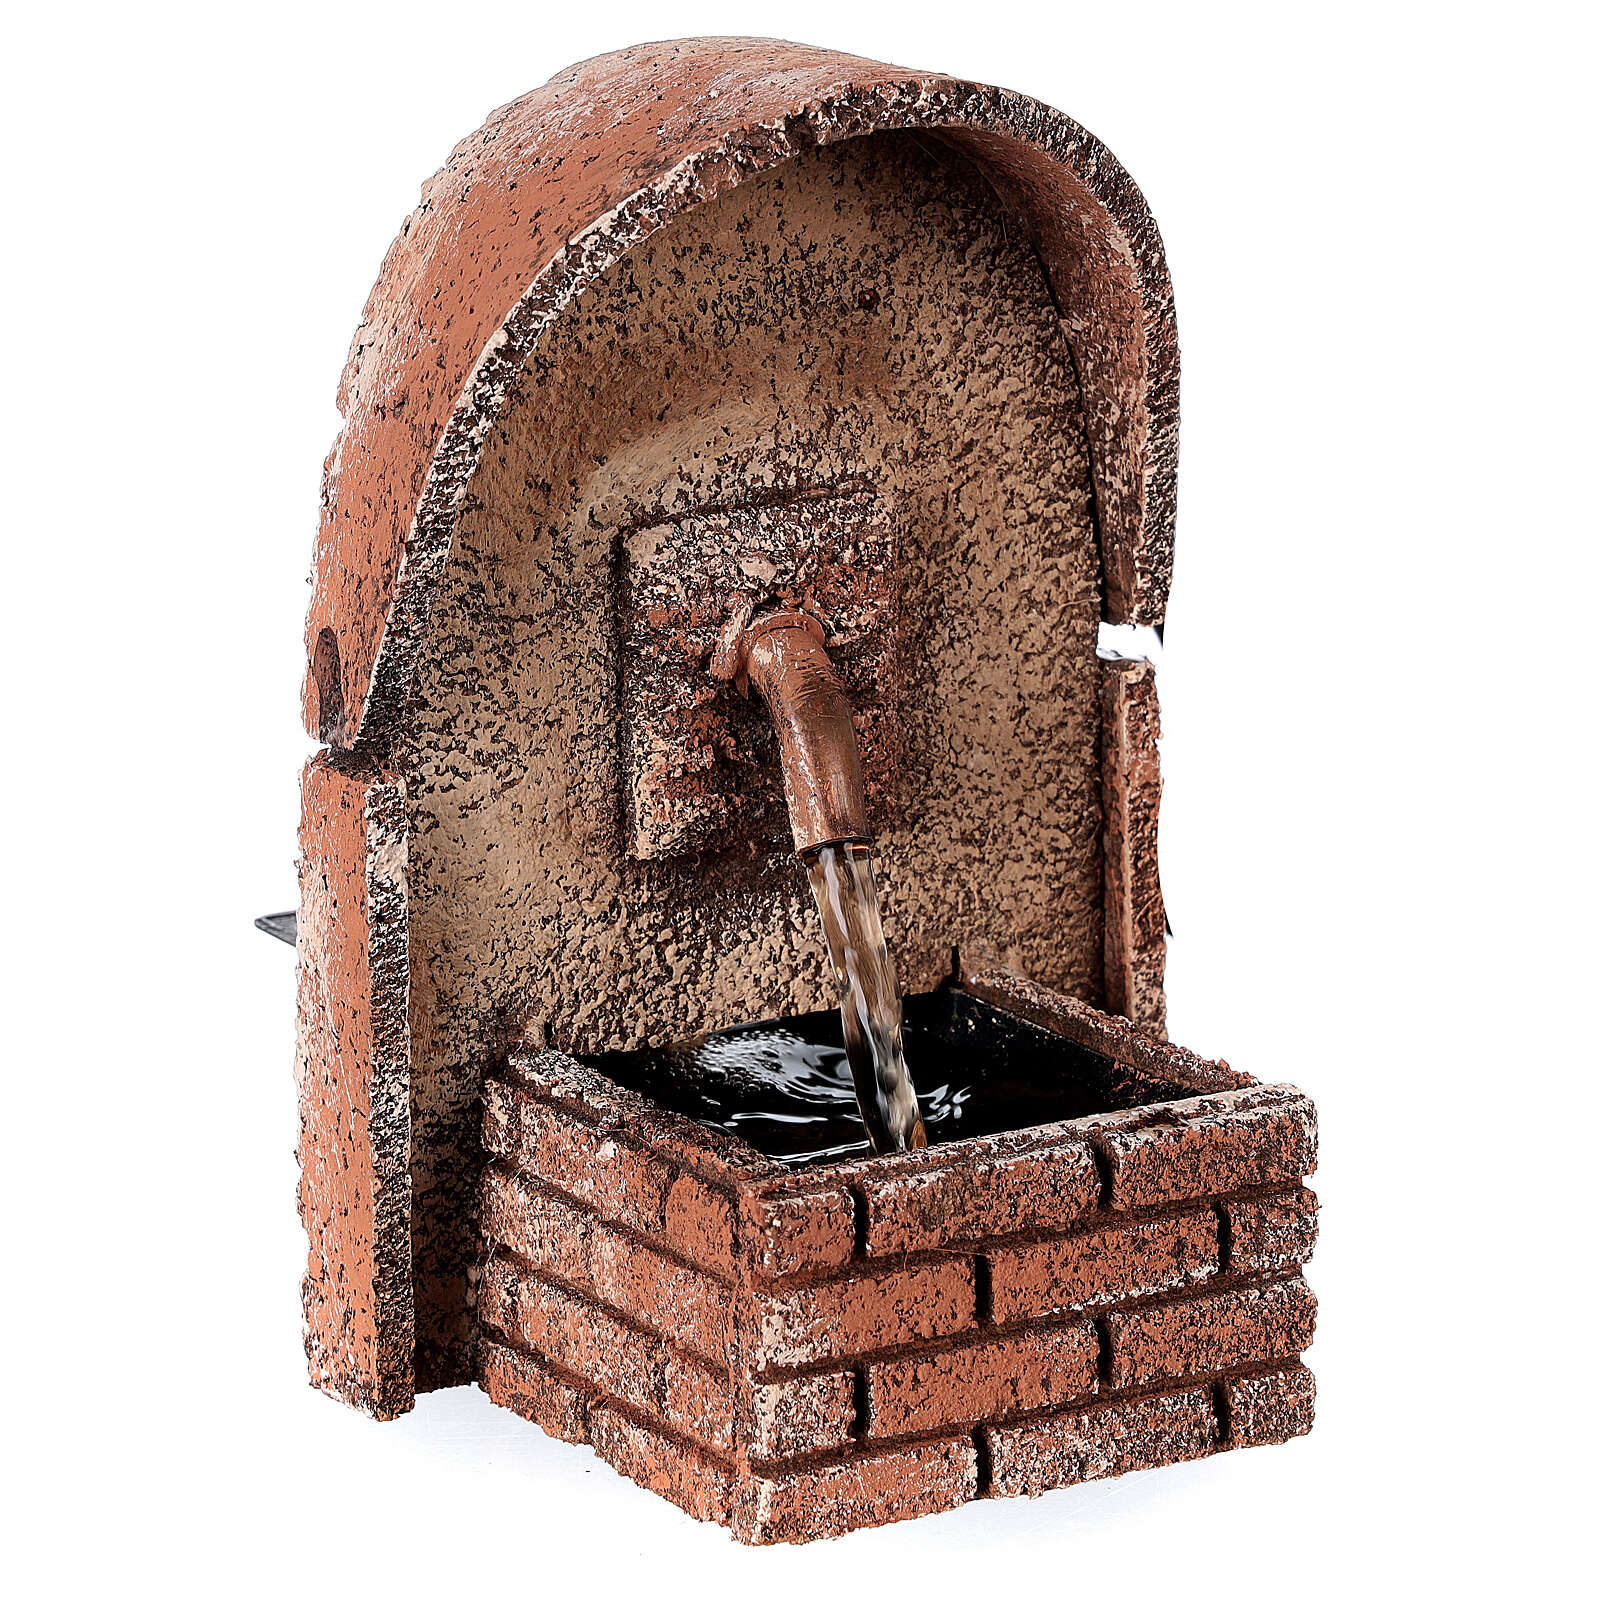 Arched fountain in cork canopy 15x10x10 for statues 8-10 cm 4